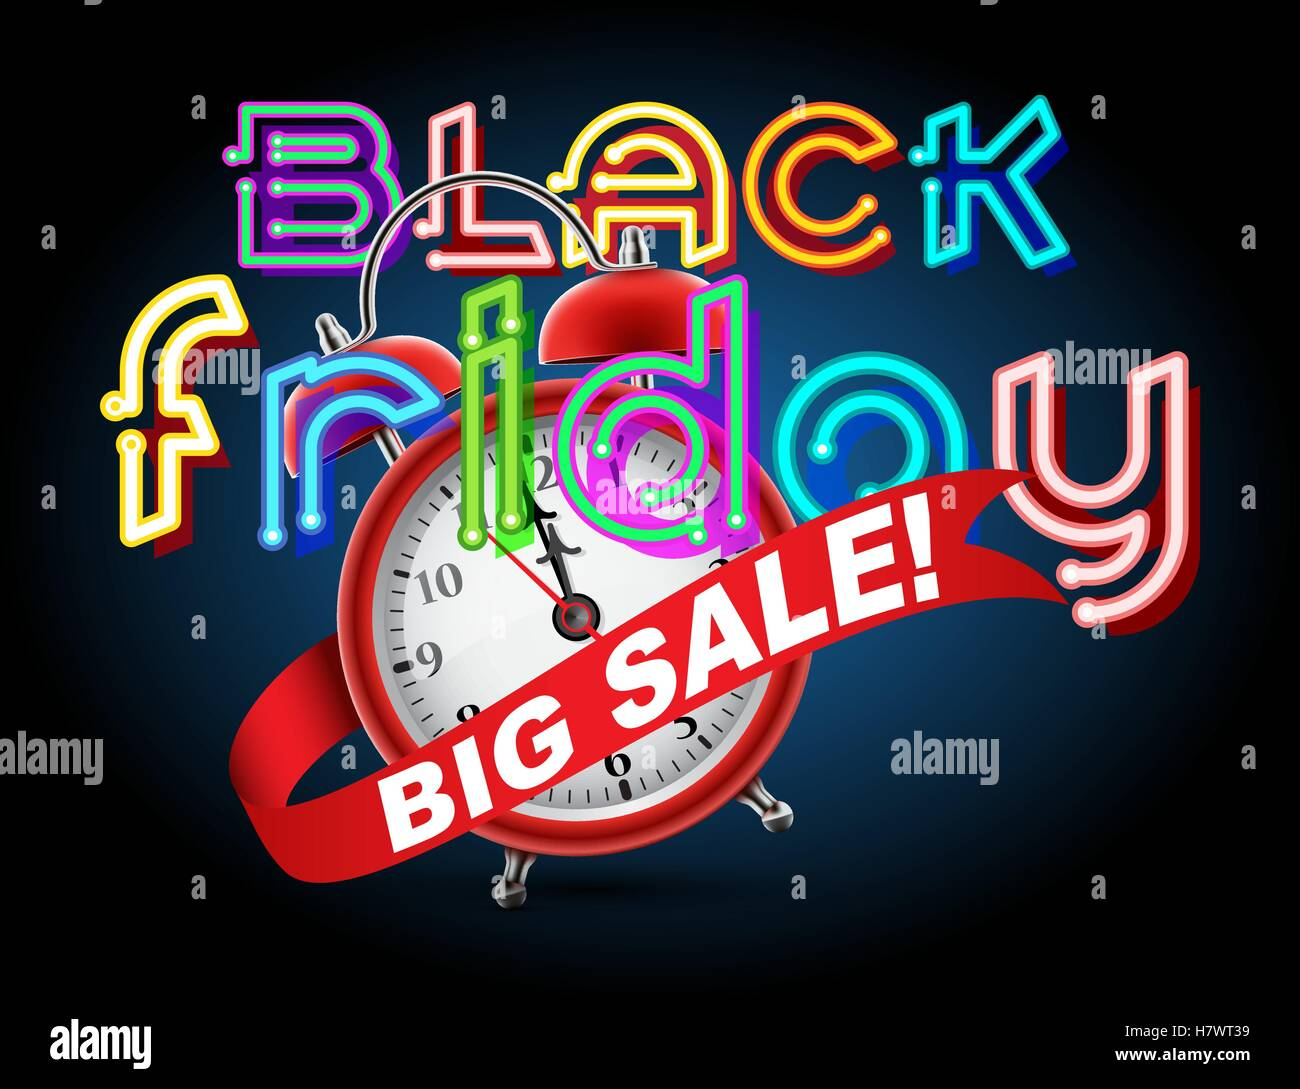 Shoes Black Friday Sale Germany